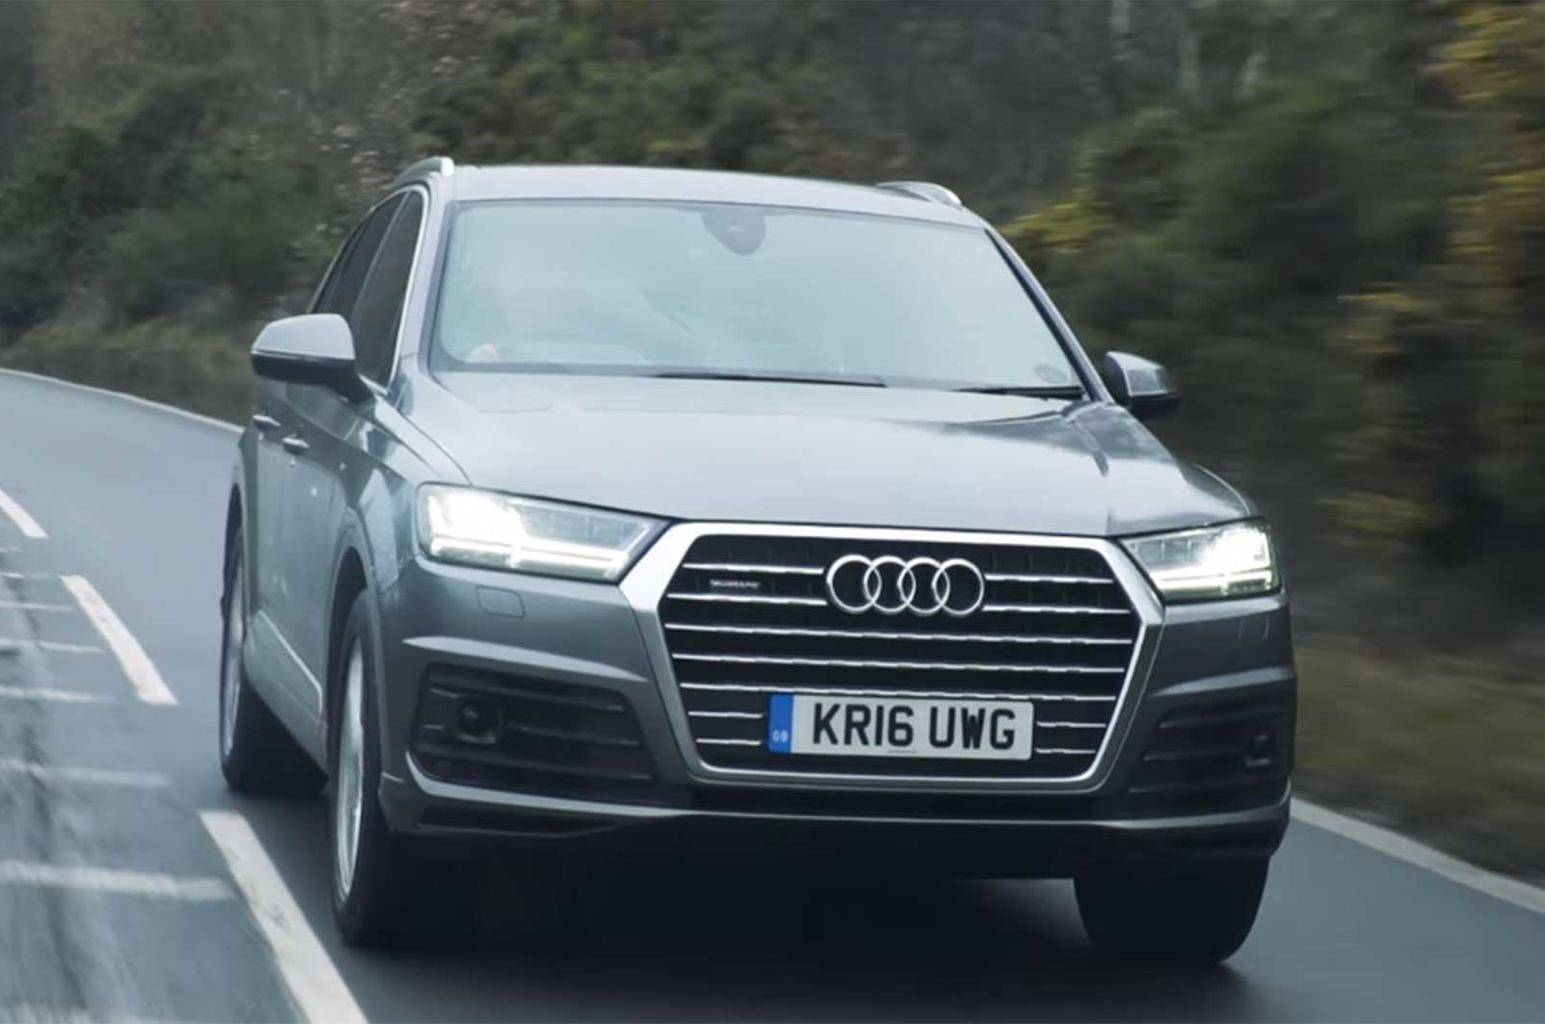 Audi Q7 reviewed on video